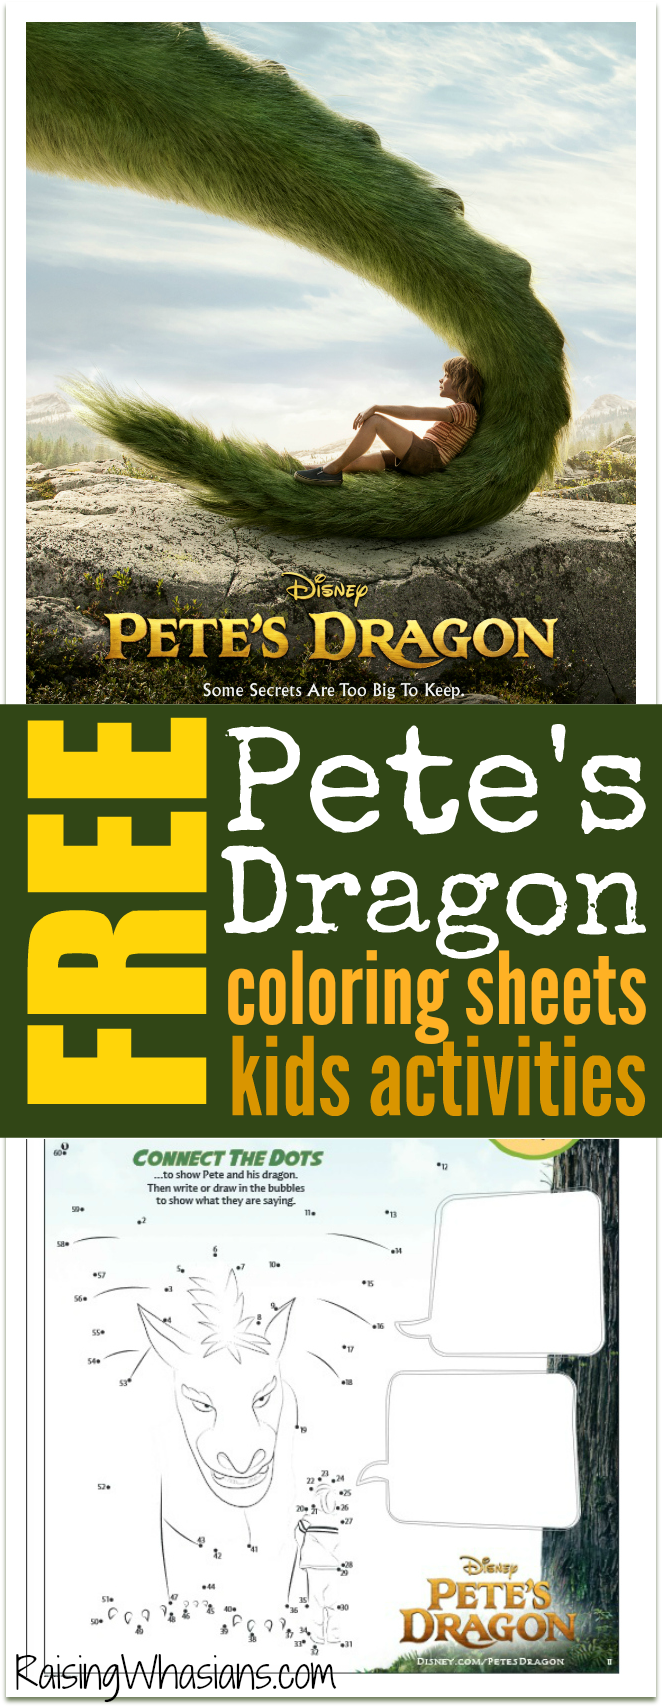 Free Disney Petes Dragon coloring pinterest